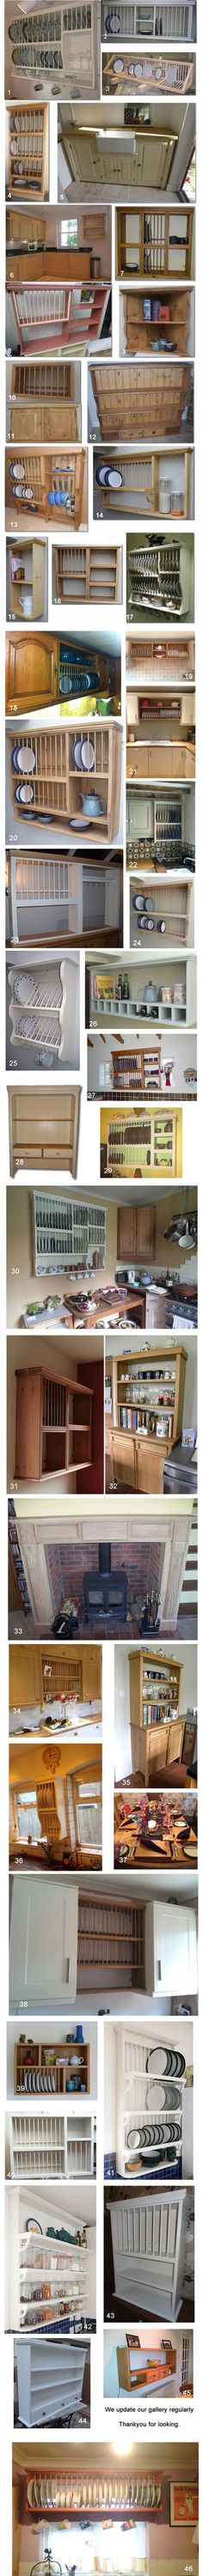 The Plate Rack Co. - Hand Crafted Bespoke Kitchen Furniture